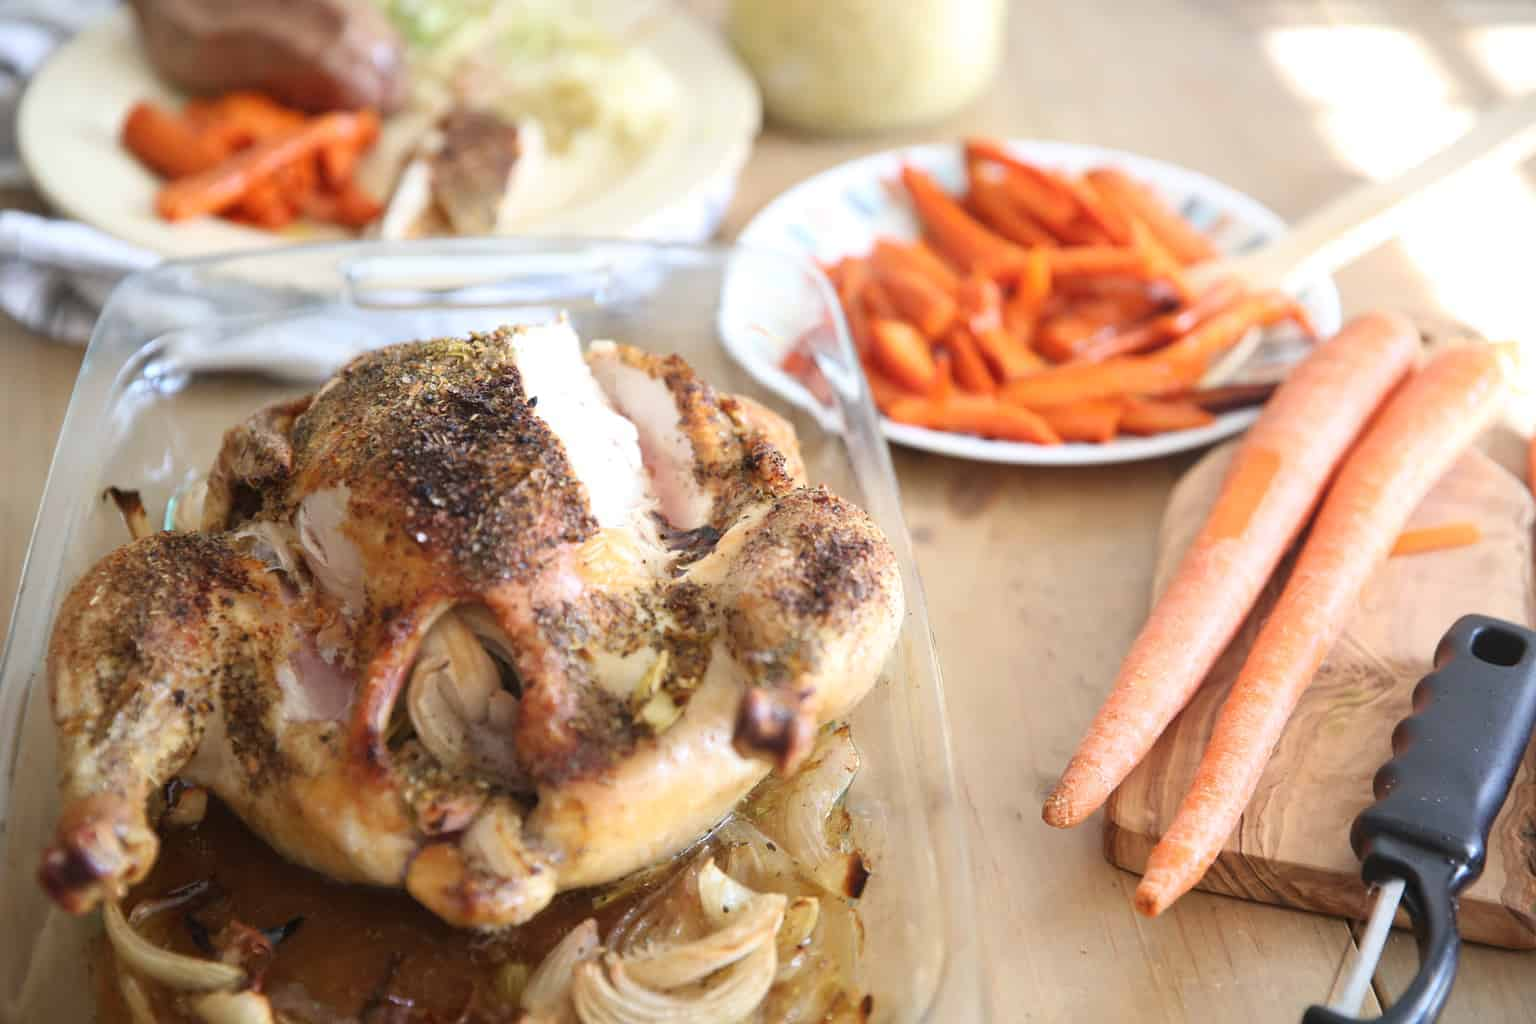 Roasted whole chicken and sliced carrots.